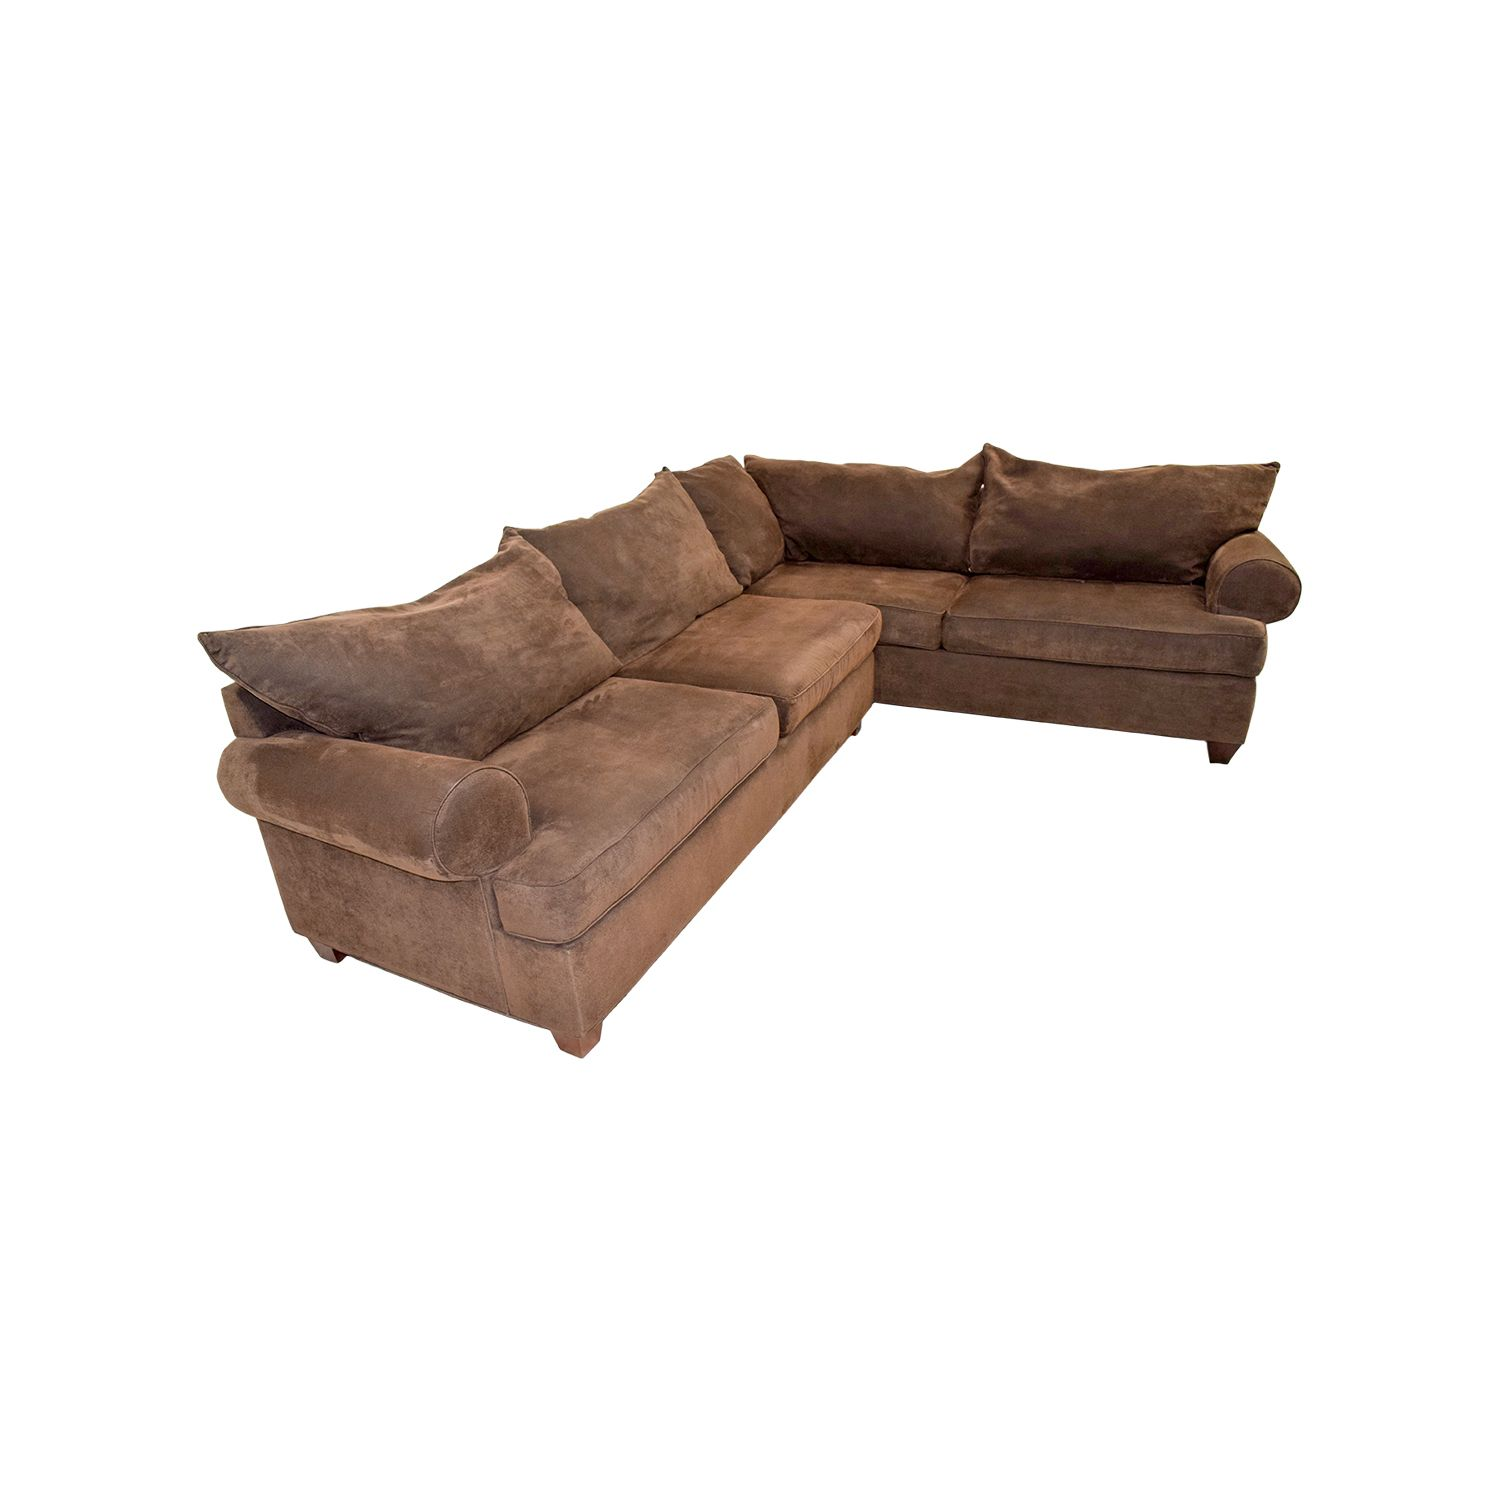 Second Hand L Shaped Sofa Bed In 2020 L Shaped Sofa Bed L Shaped Sofa L Shaped Leather Sofa